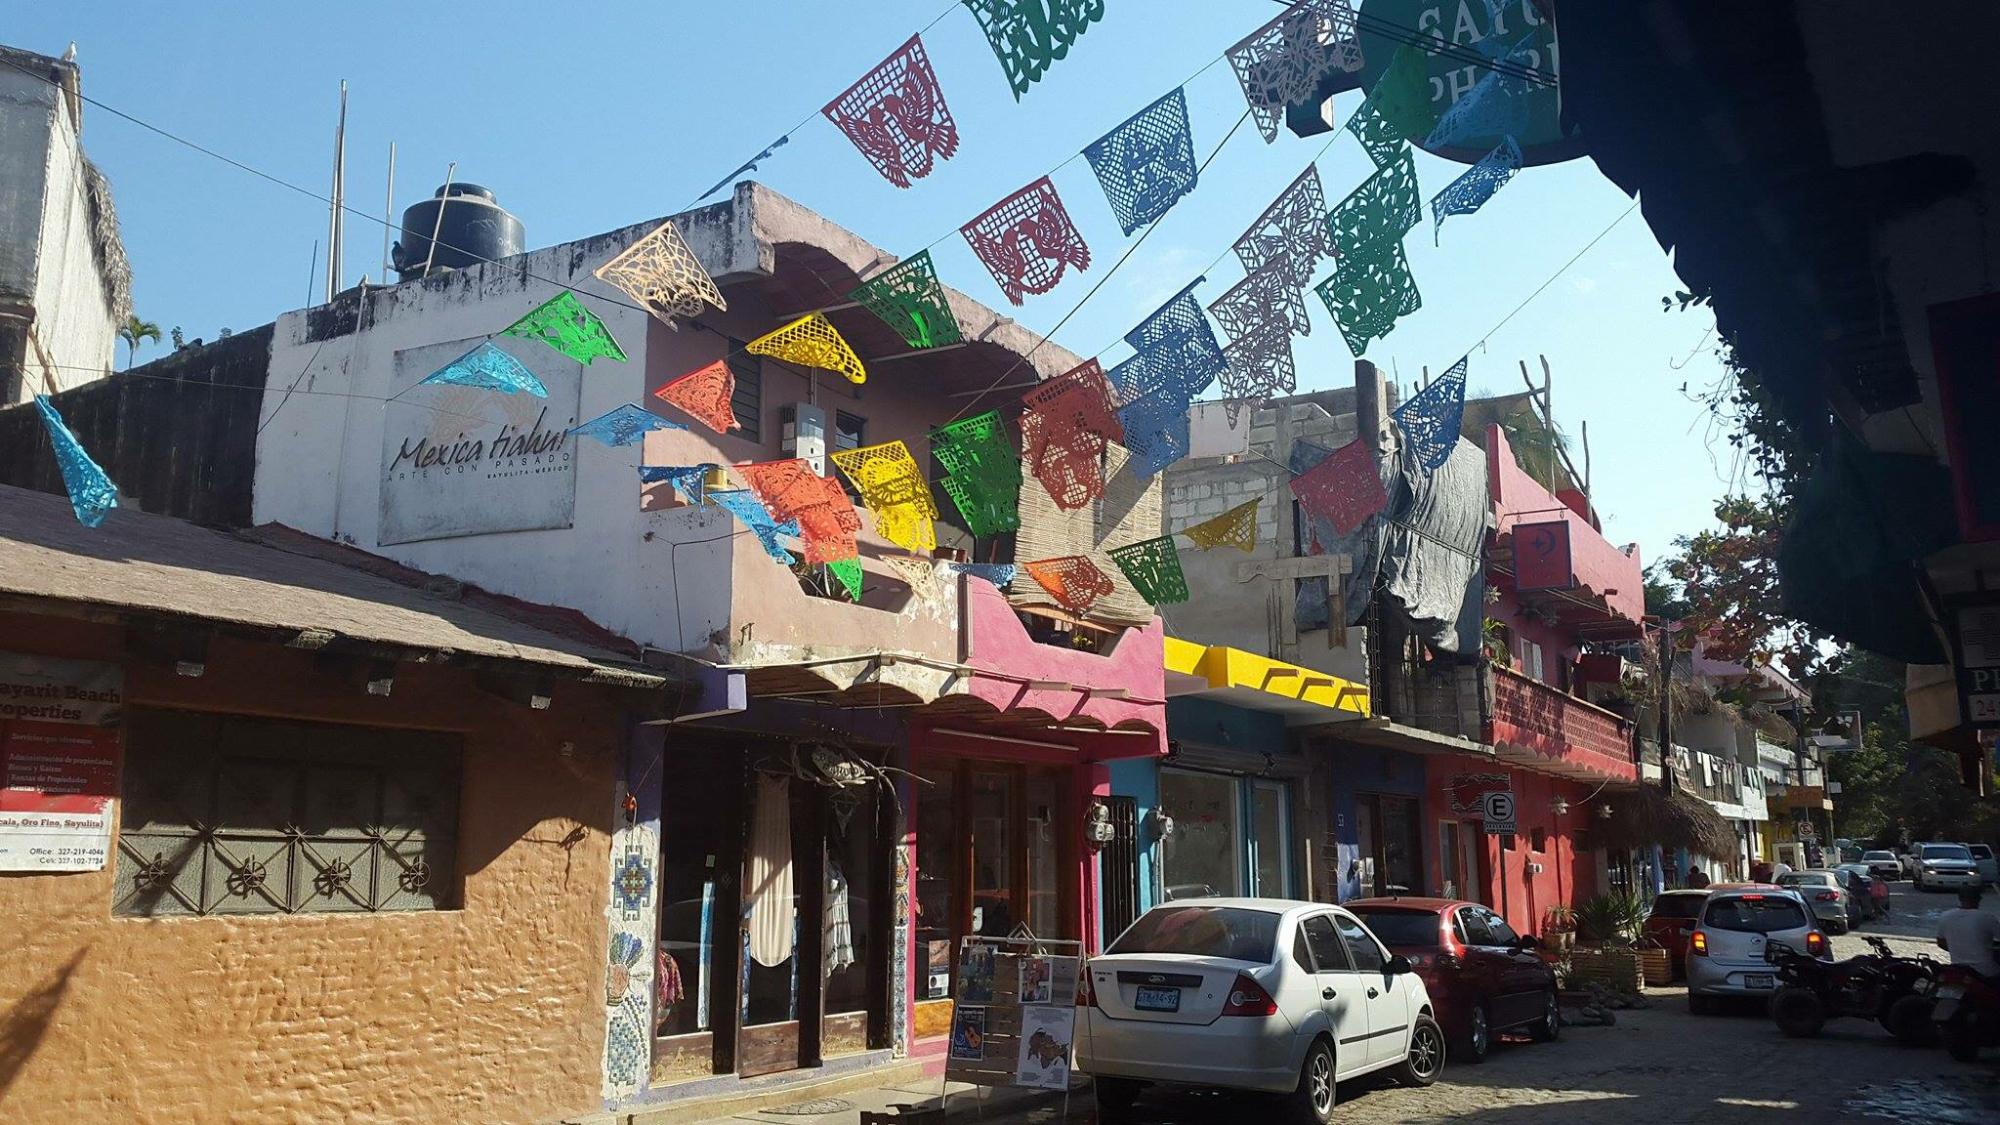 Jalisco is the prettiest little town with great surfing, one hour outside of Puerto Vallarta.